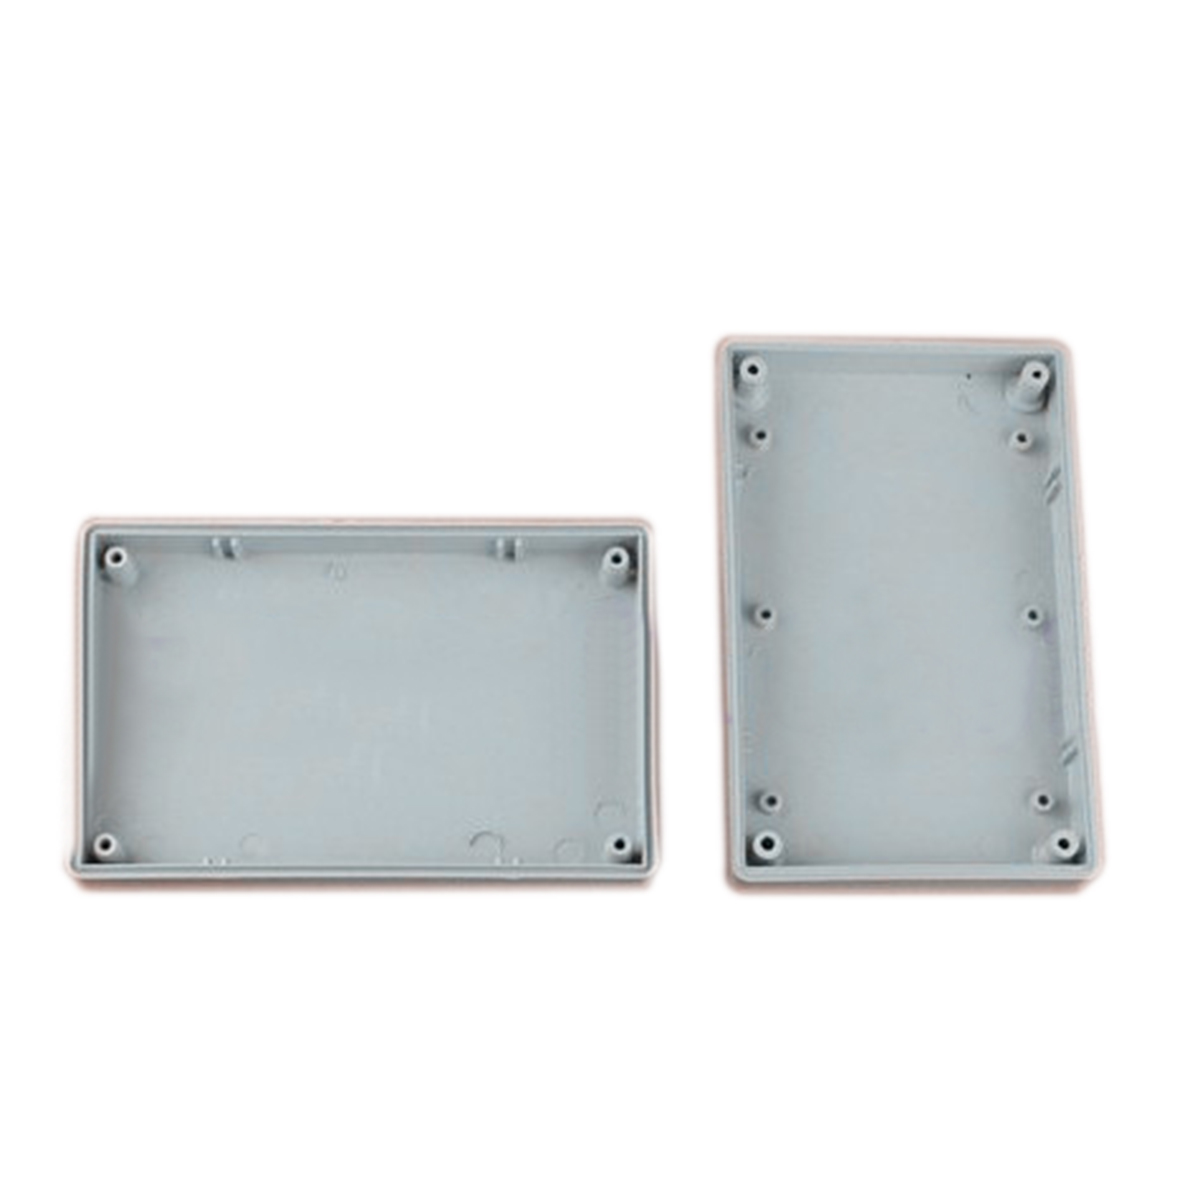 Mayitr Waterproof Enclosure Box Plastic Electronic Project Instrument Case Cover 125x80x32mm 4pcs a lot diy plastic enclosure for electronic handheld led junction box abs housing control box waterproof case 238 134 50mm